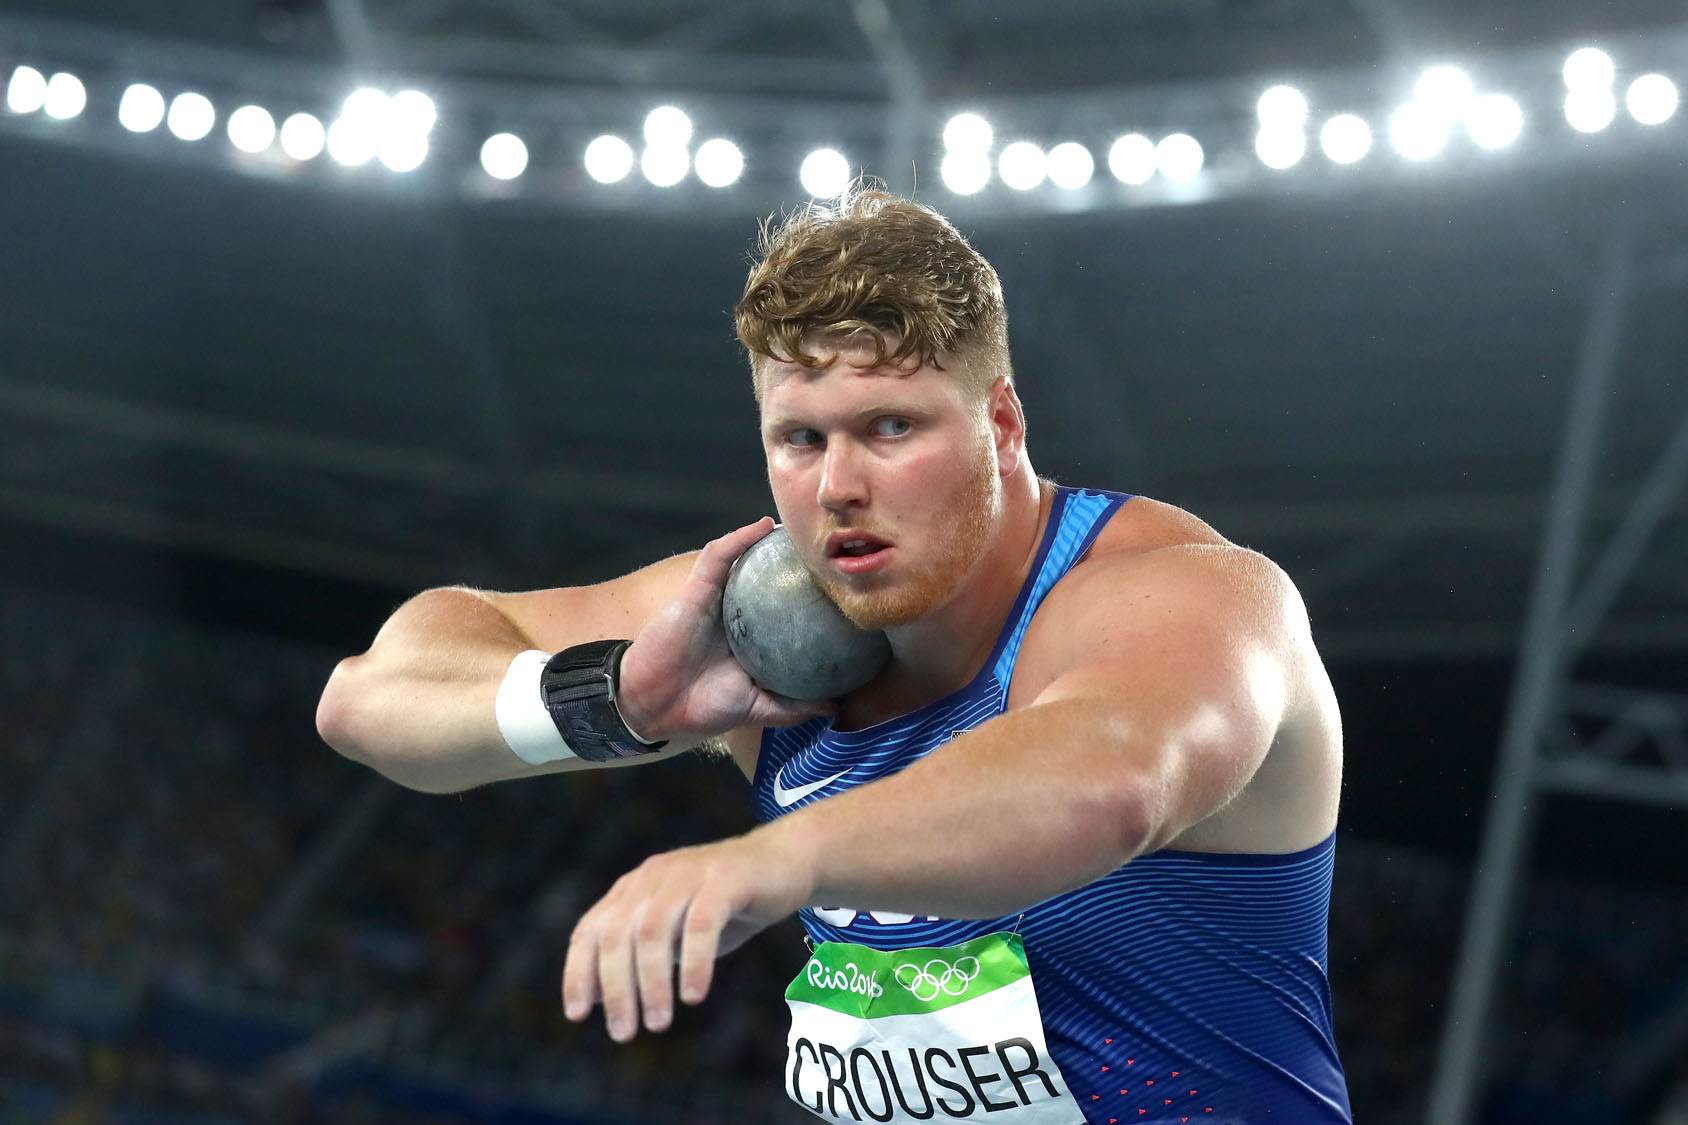 USA's Ryan Crouser takes gold in men's shot put final at Rio 2016 Olympics